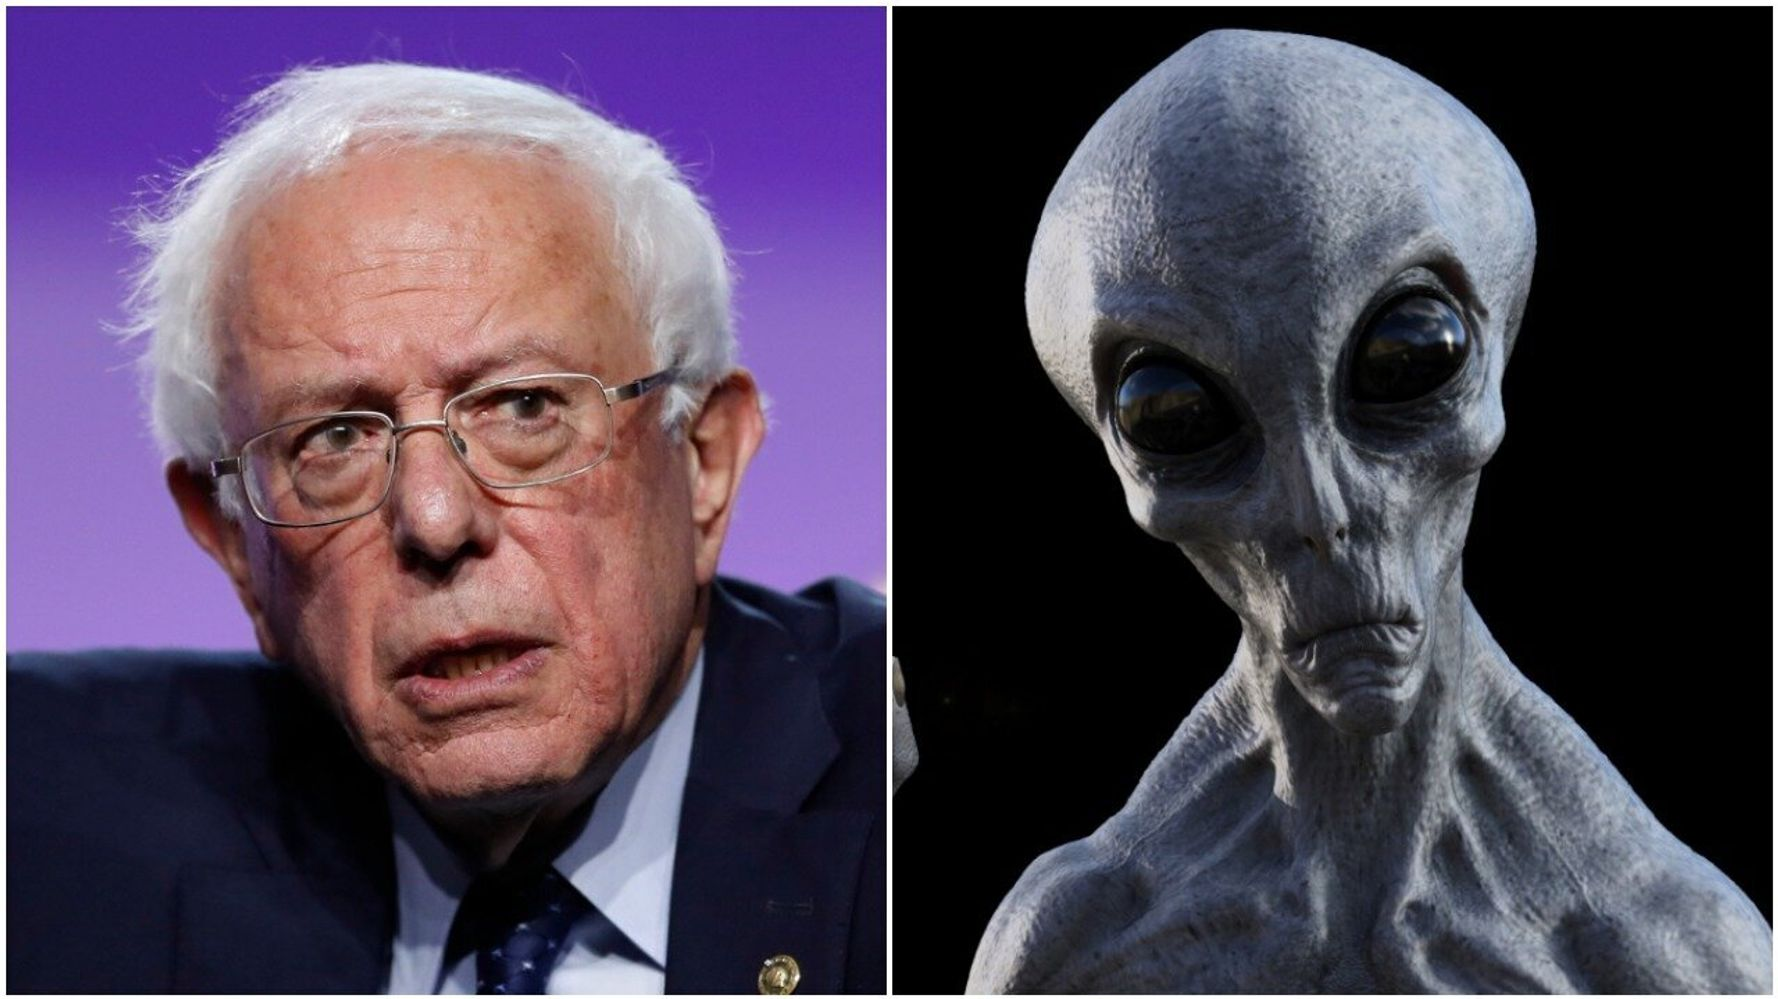 Bernie Sanders Says He'll Reveal The Truth About Aliens If Elected President 86